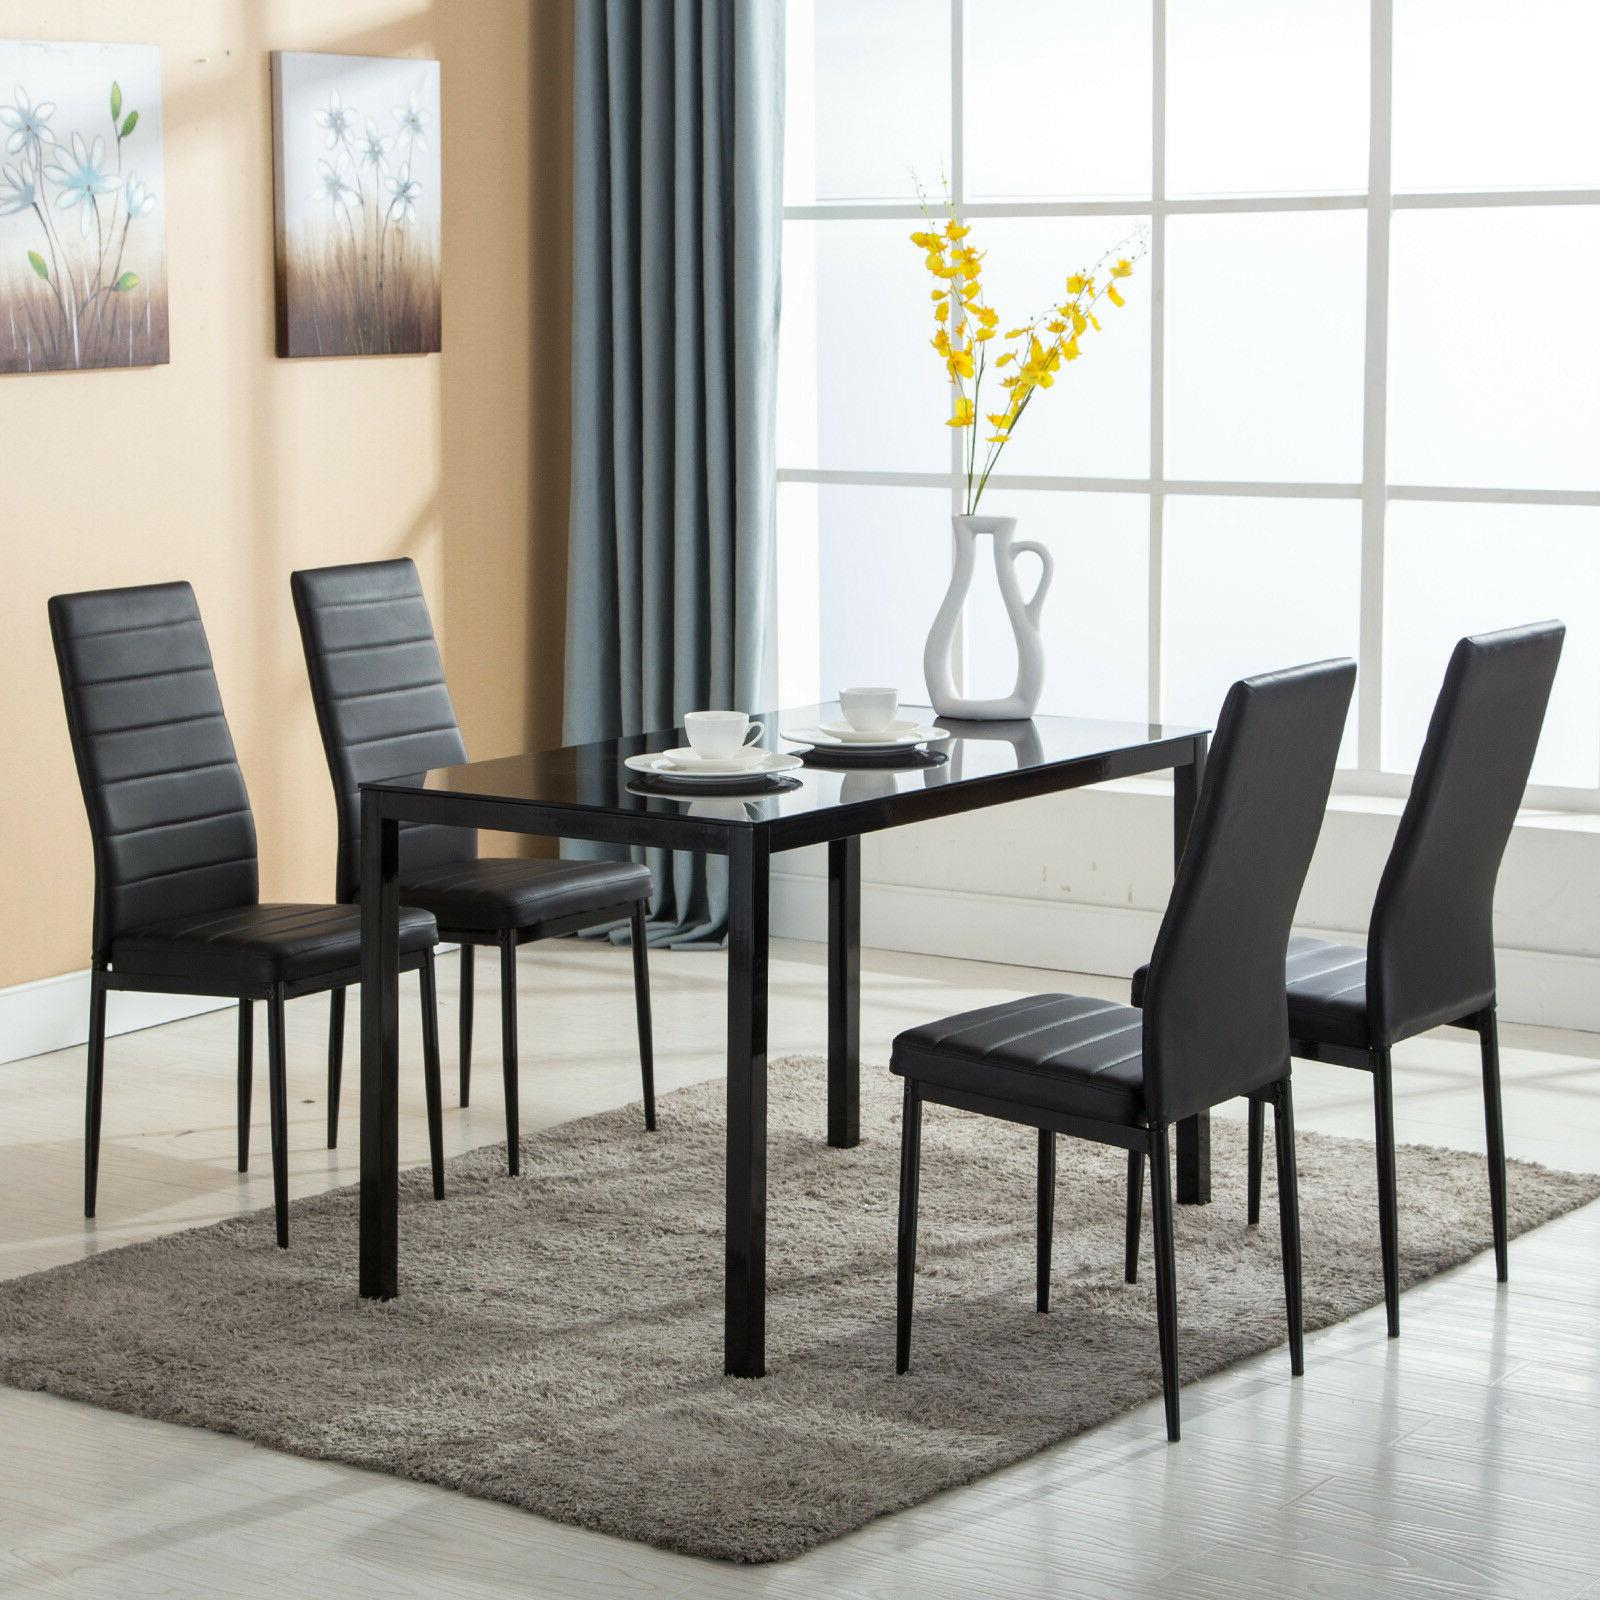 5 Piece Dining Table Set 4 Chairs Glass Intended For Newest Ligon 3 Piece Breakfast Nook Dining Sets (Image 3 of 20)